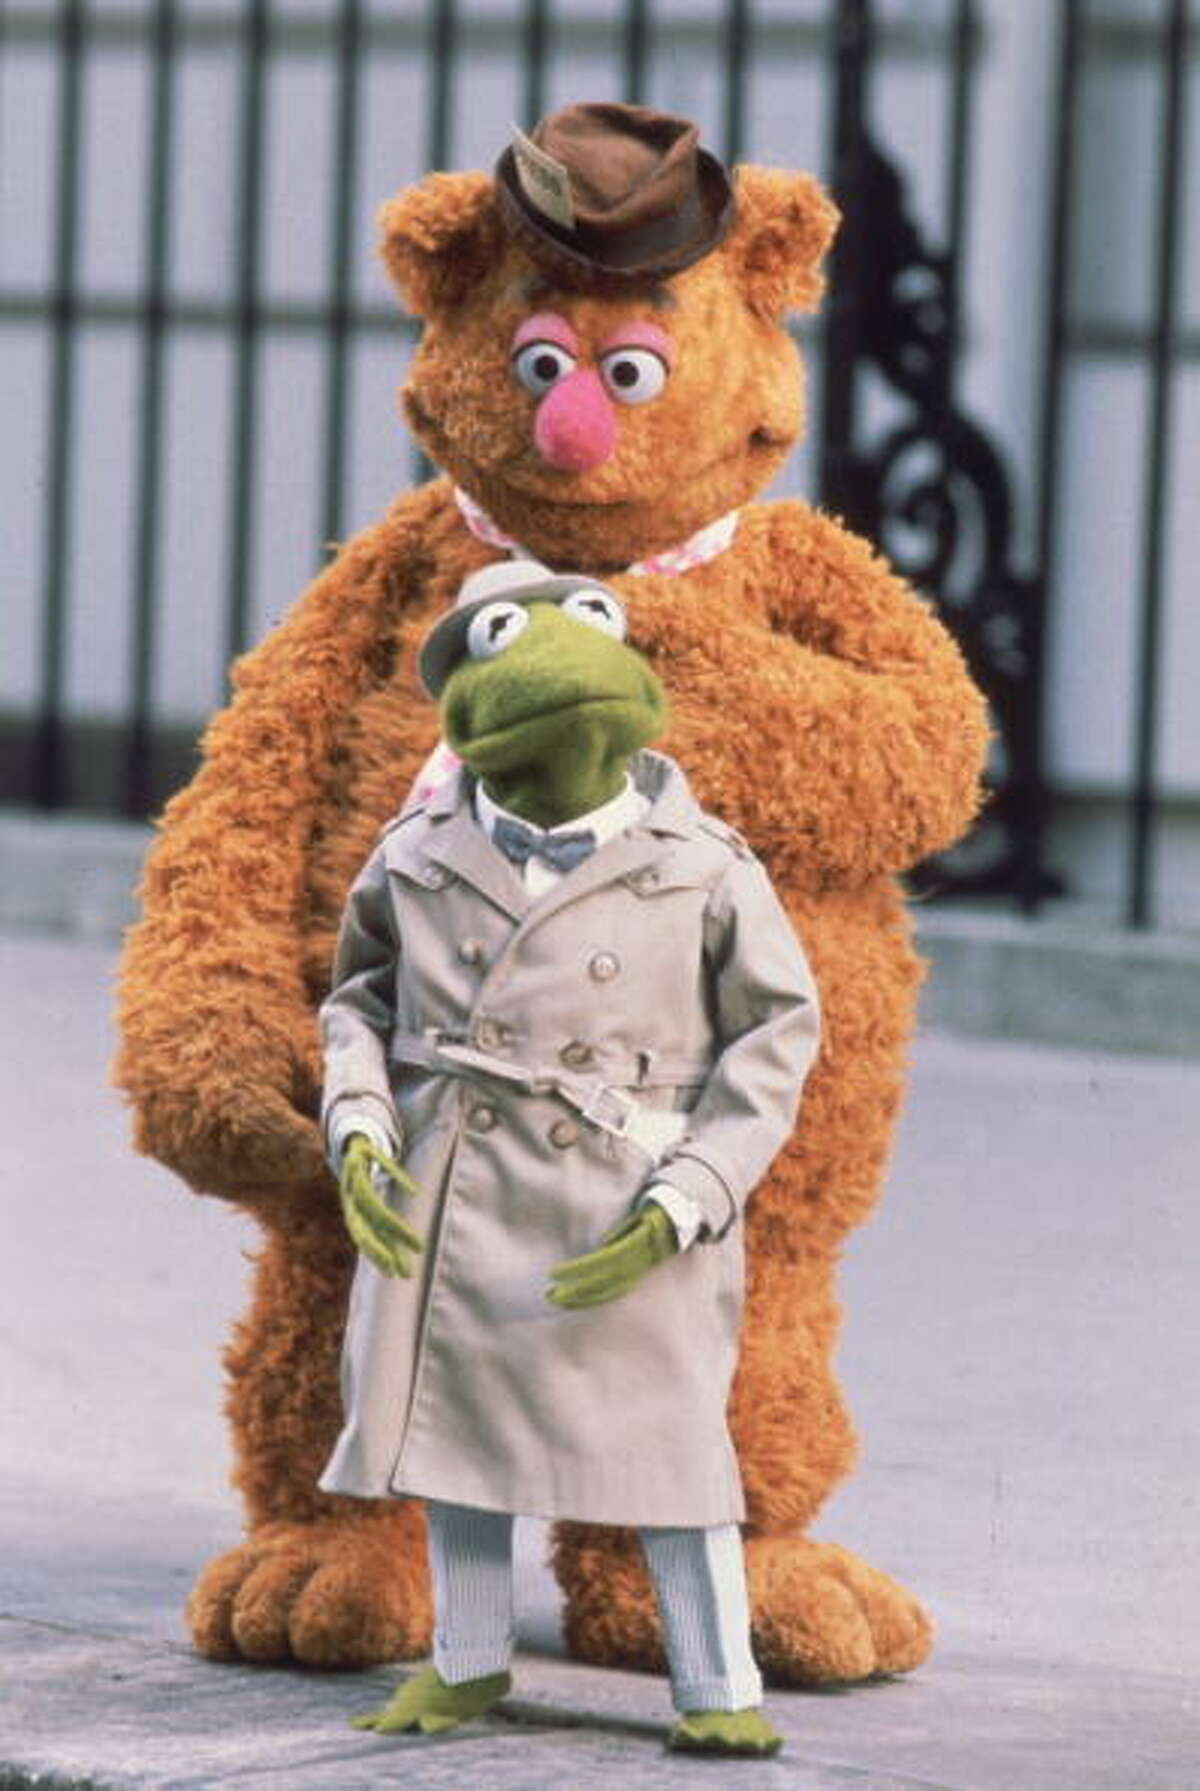 1981: Kermit and Fozzie Bear as a pair of investigative reporters in Jim Henson's 'The Great Muppet Caper'.